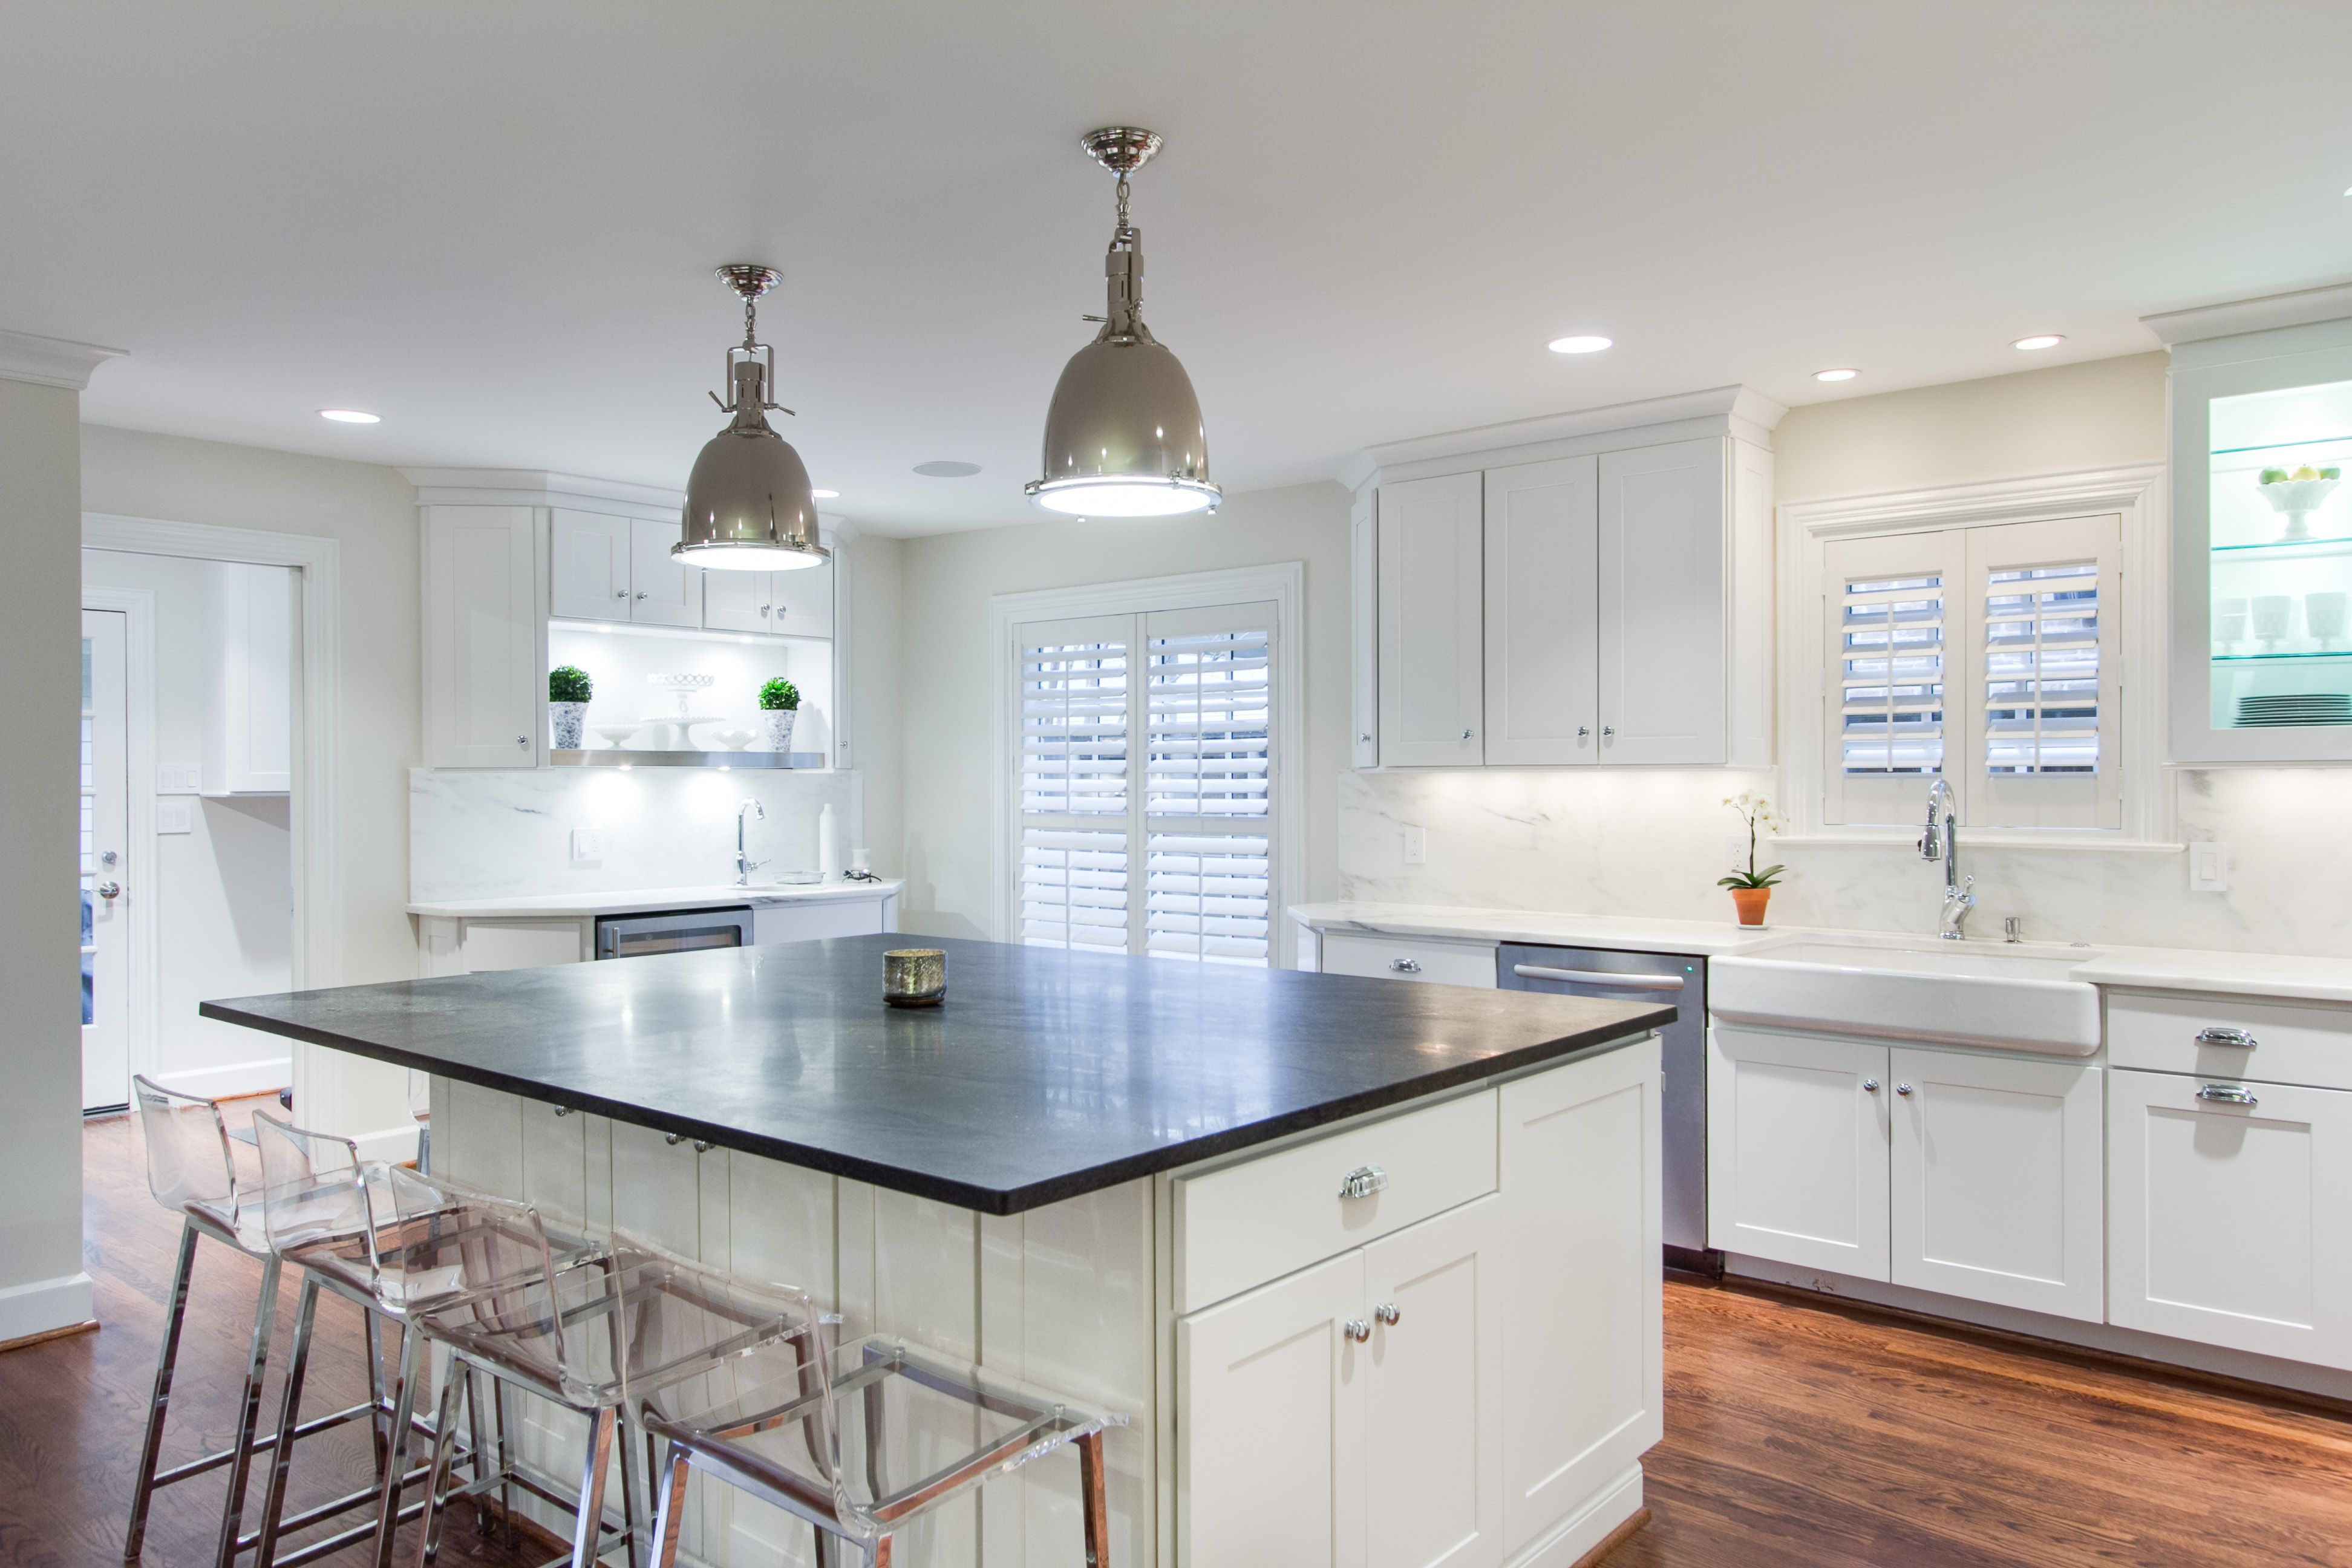 Superieur WOLF Classic Cabinets In Dartmouth White U2014 Kitchen Designed By Kitchen  Design Concepts Of Dallas